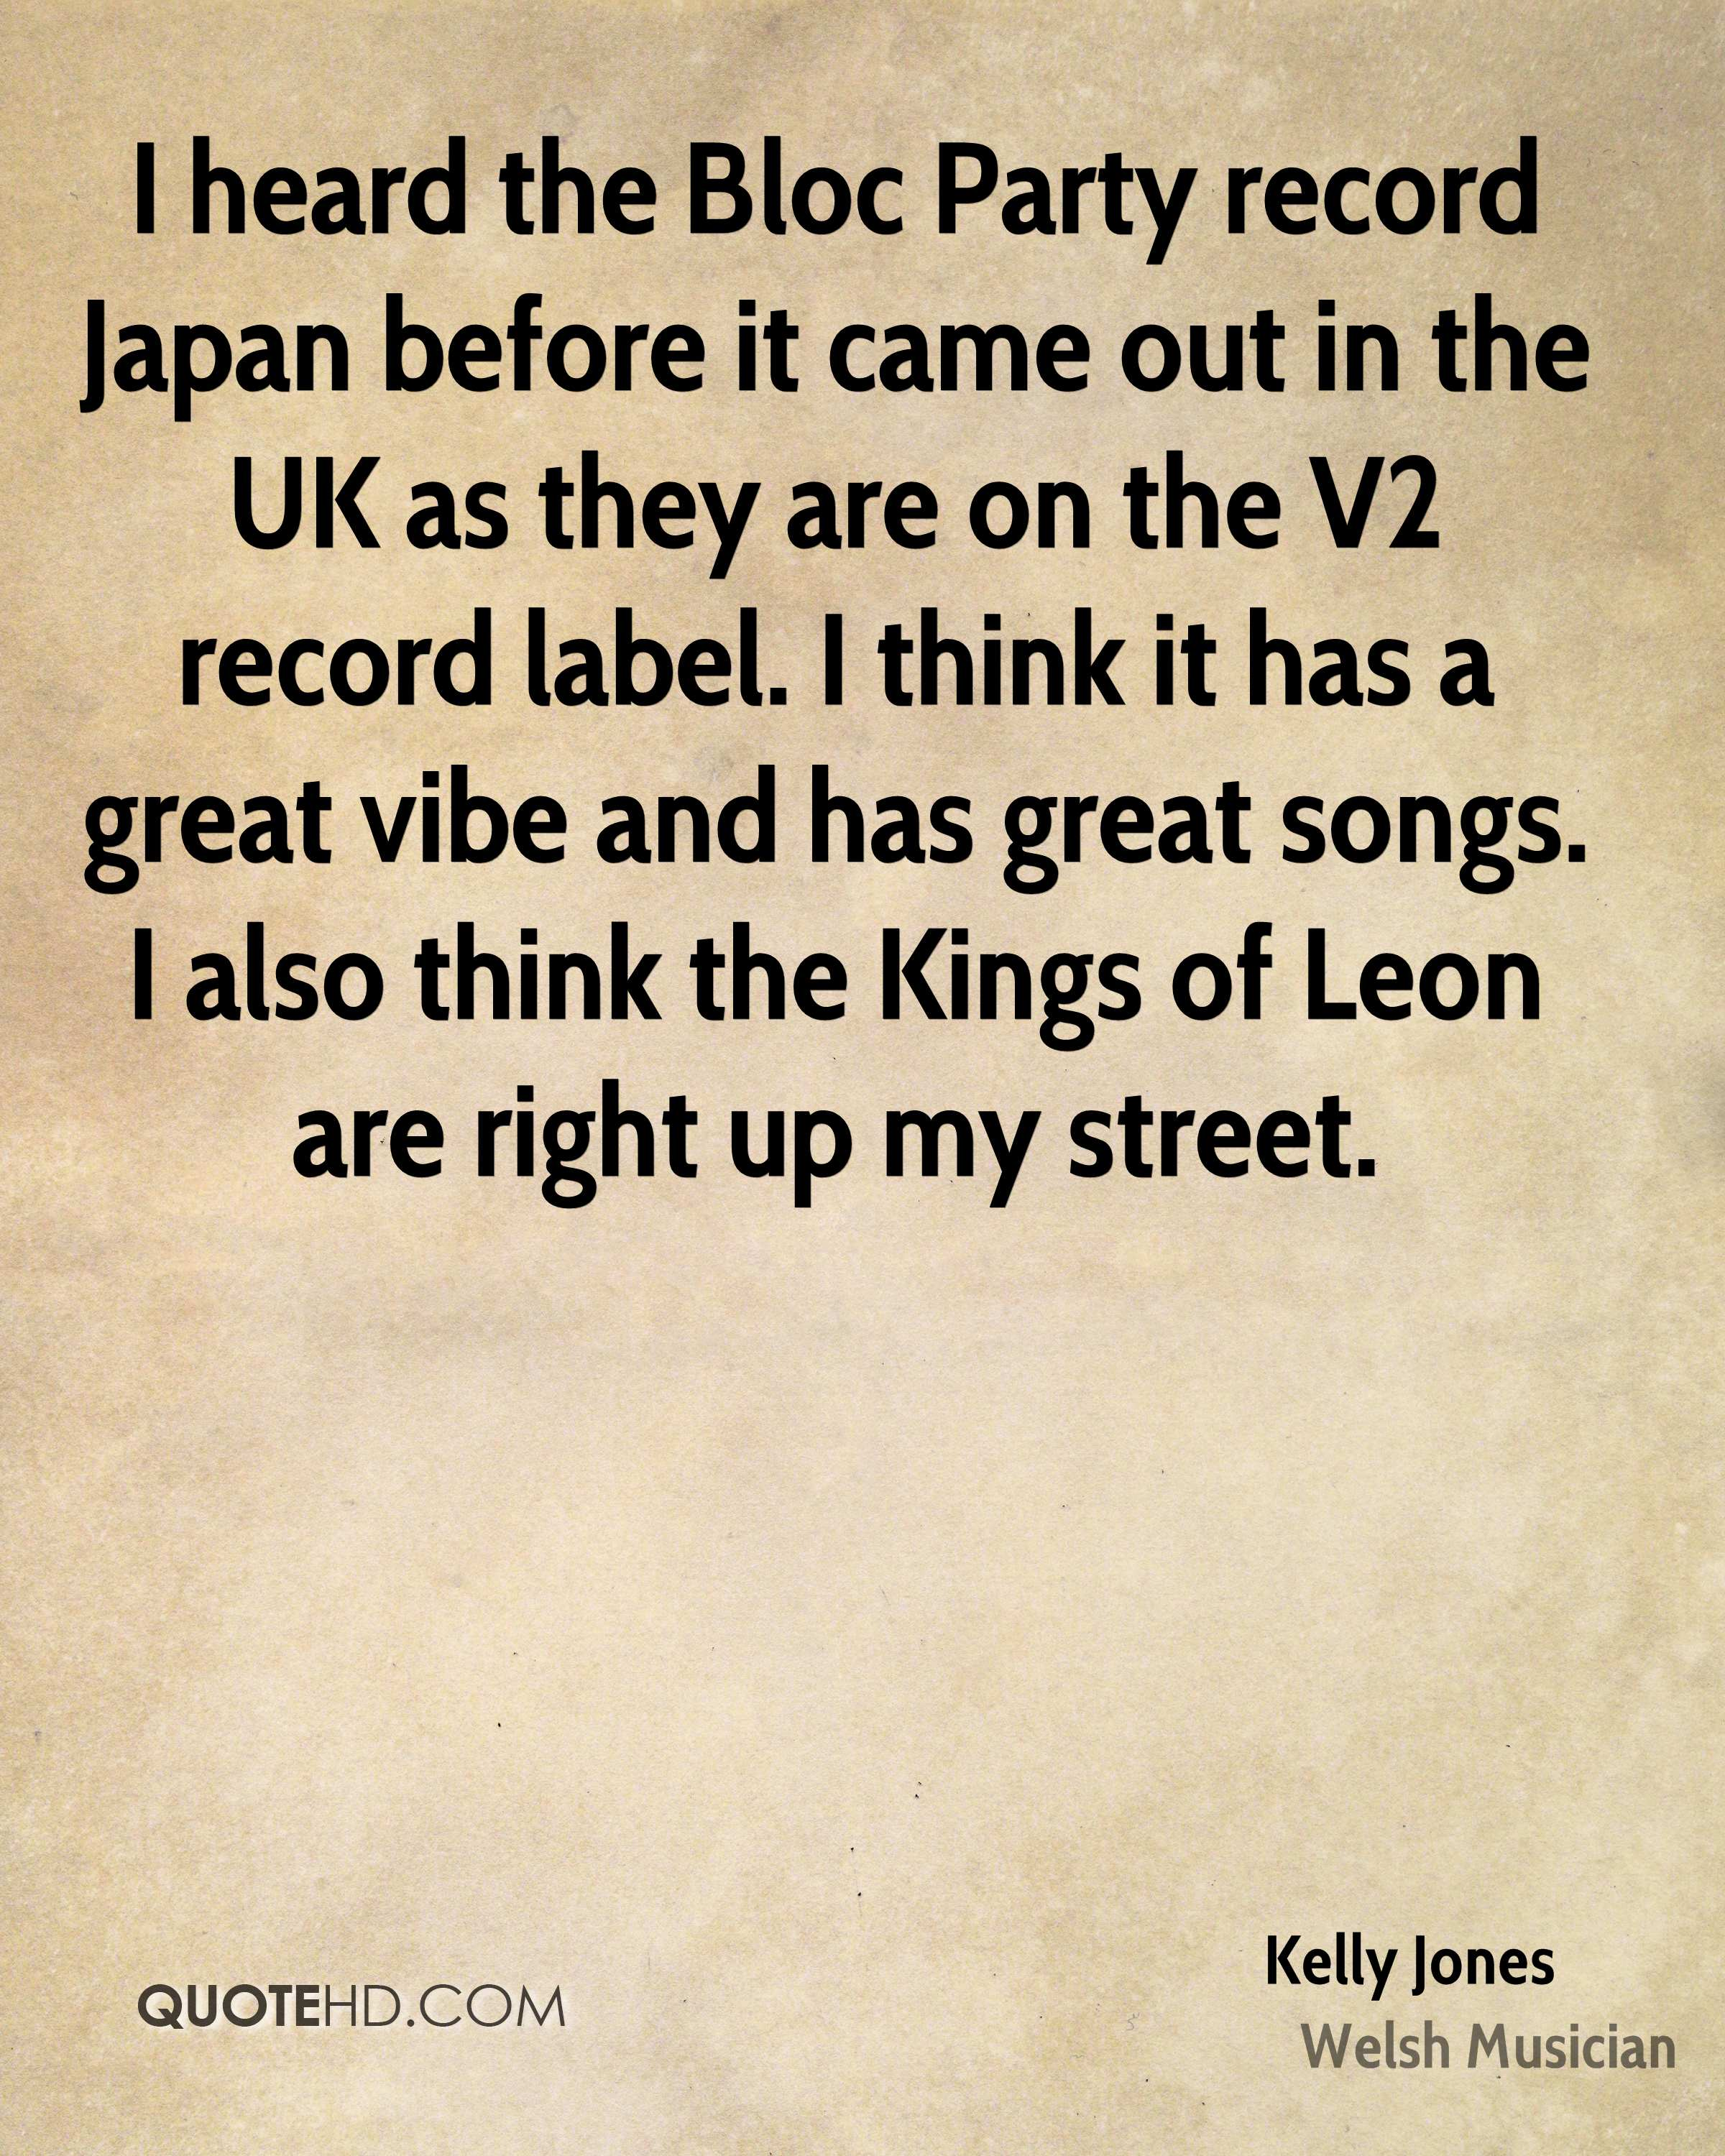 I heard the Bloc Party record Japan before it came out in the UK as they are on the V2 record label. I think it has a great vibe and has great songs. I also think the Kings of Leon are right up my street.